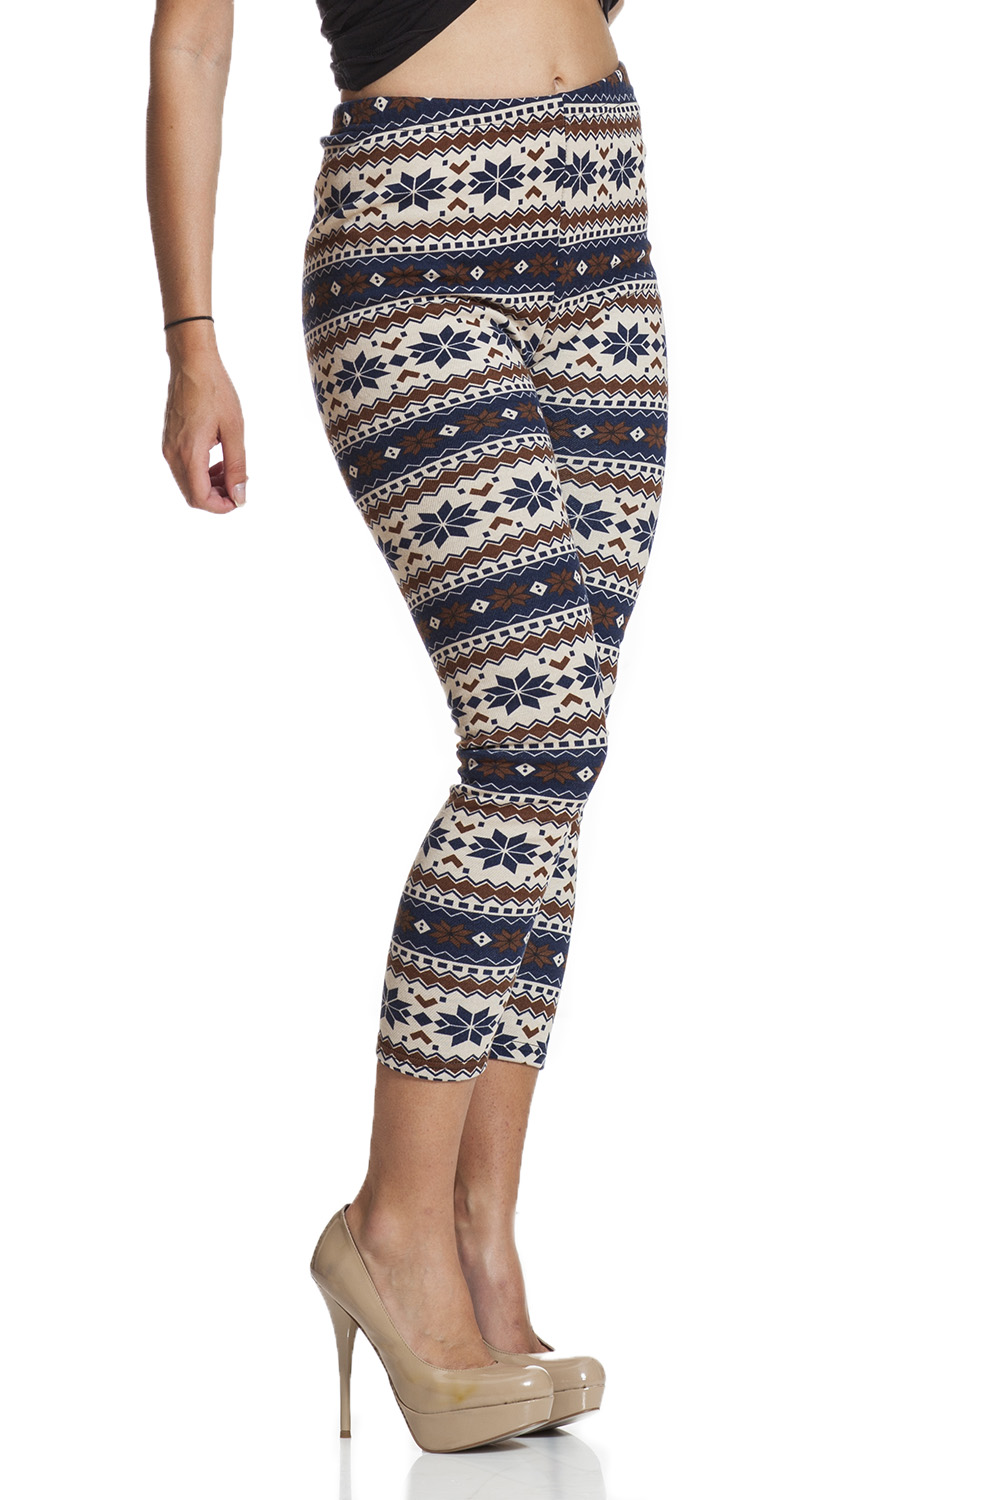 varma vinter leggings online